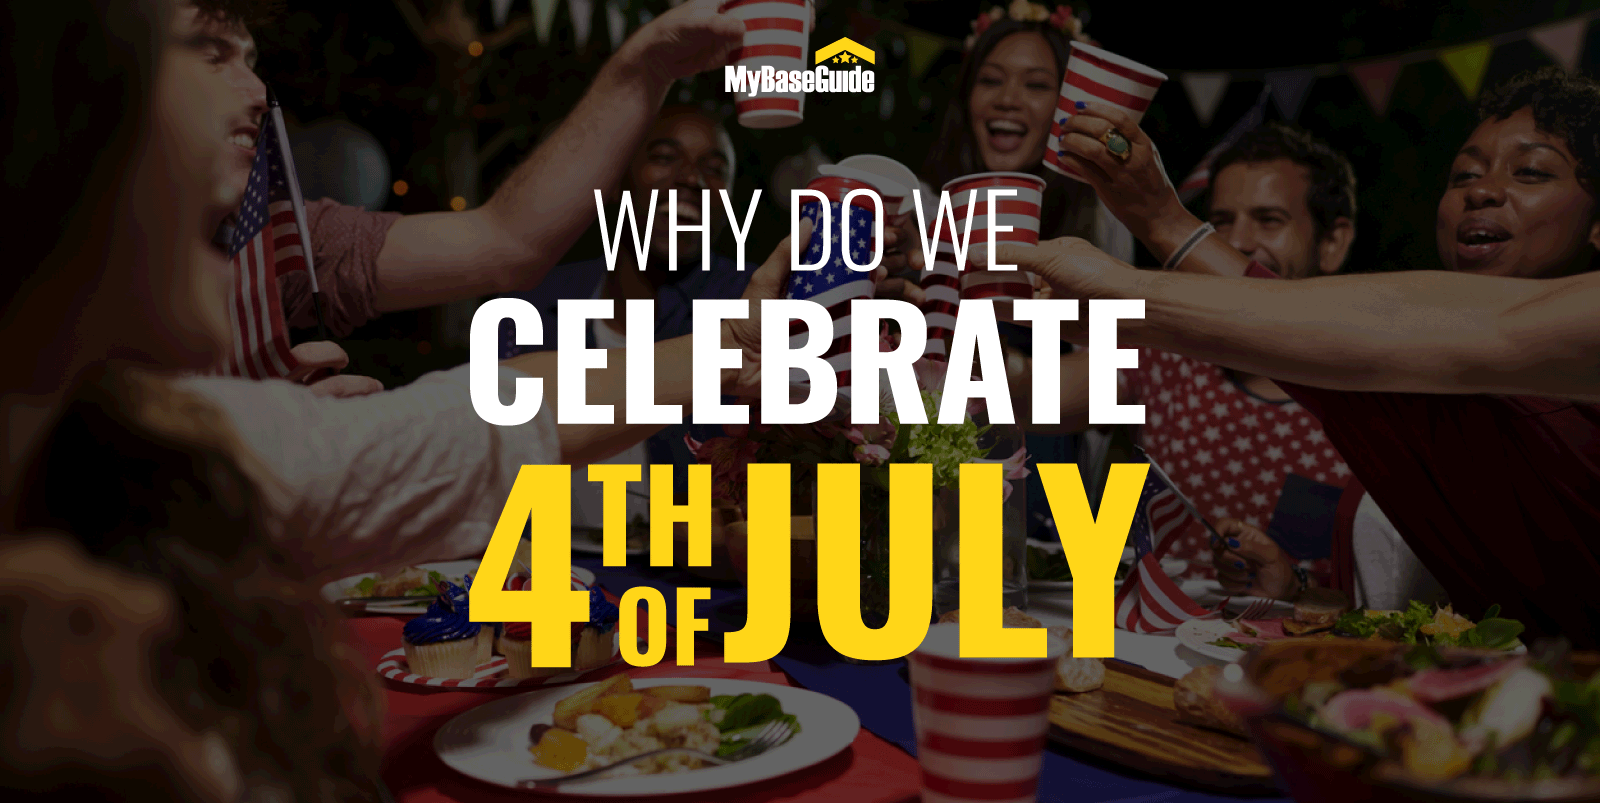 Why Do We Celebrate 4th of July? 2021